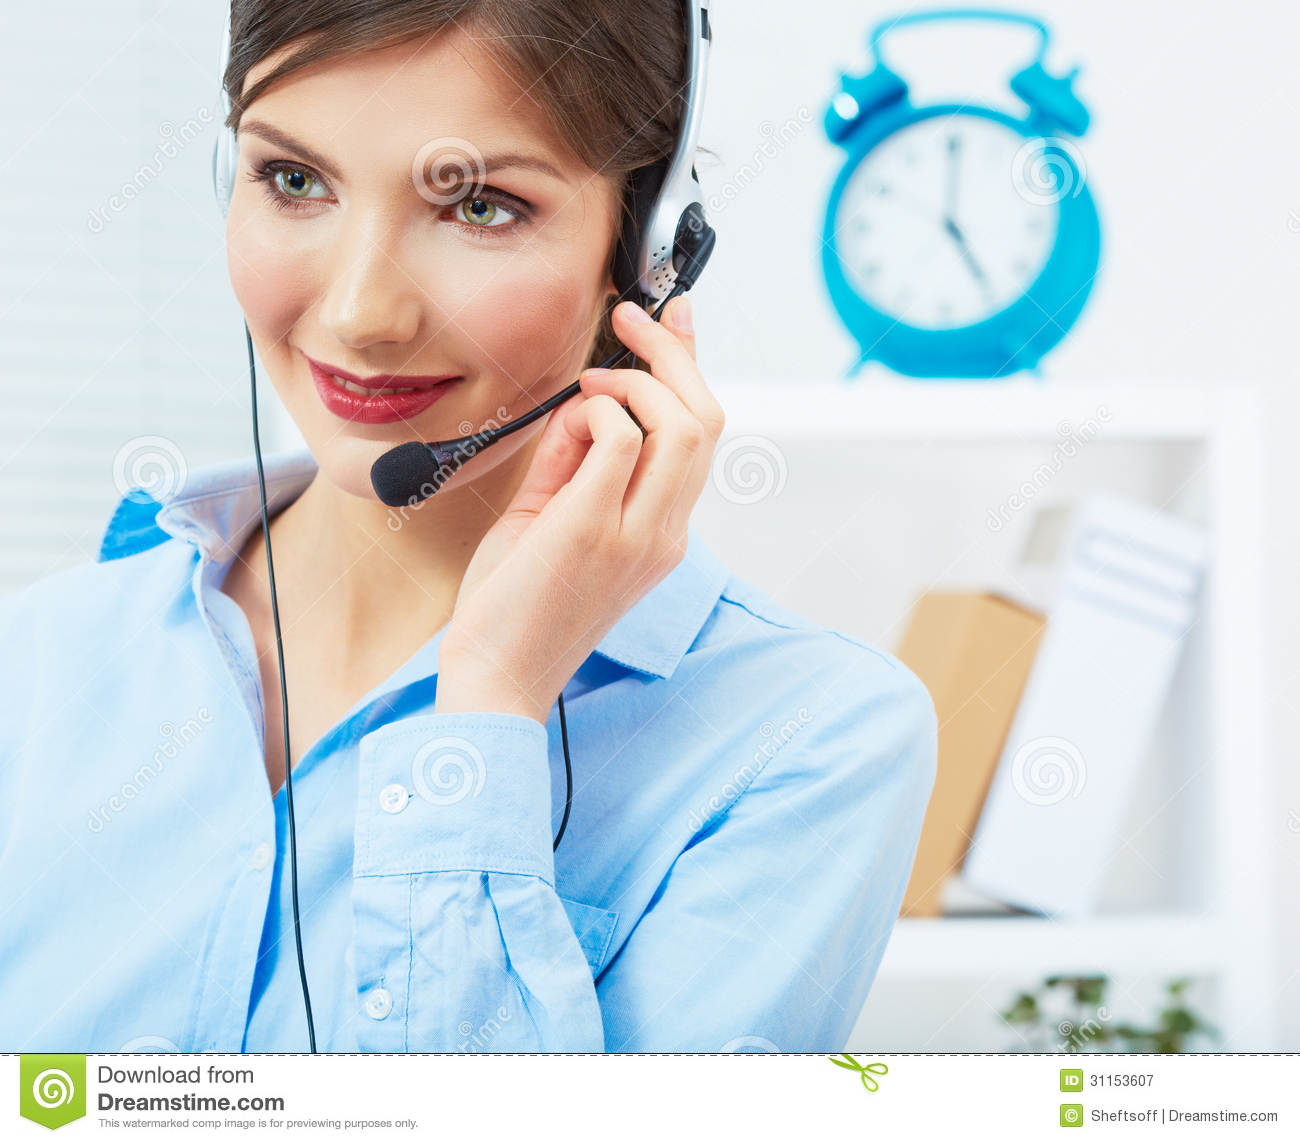 Call center business plan pdf